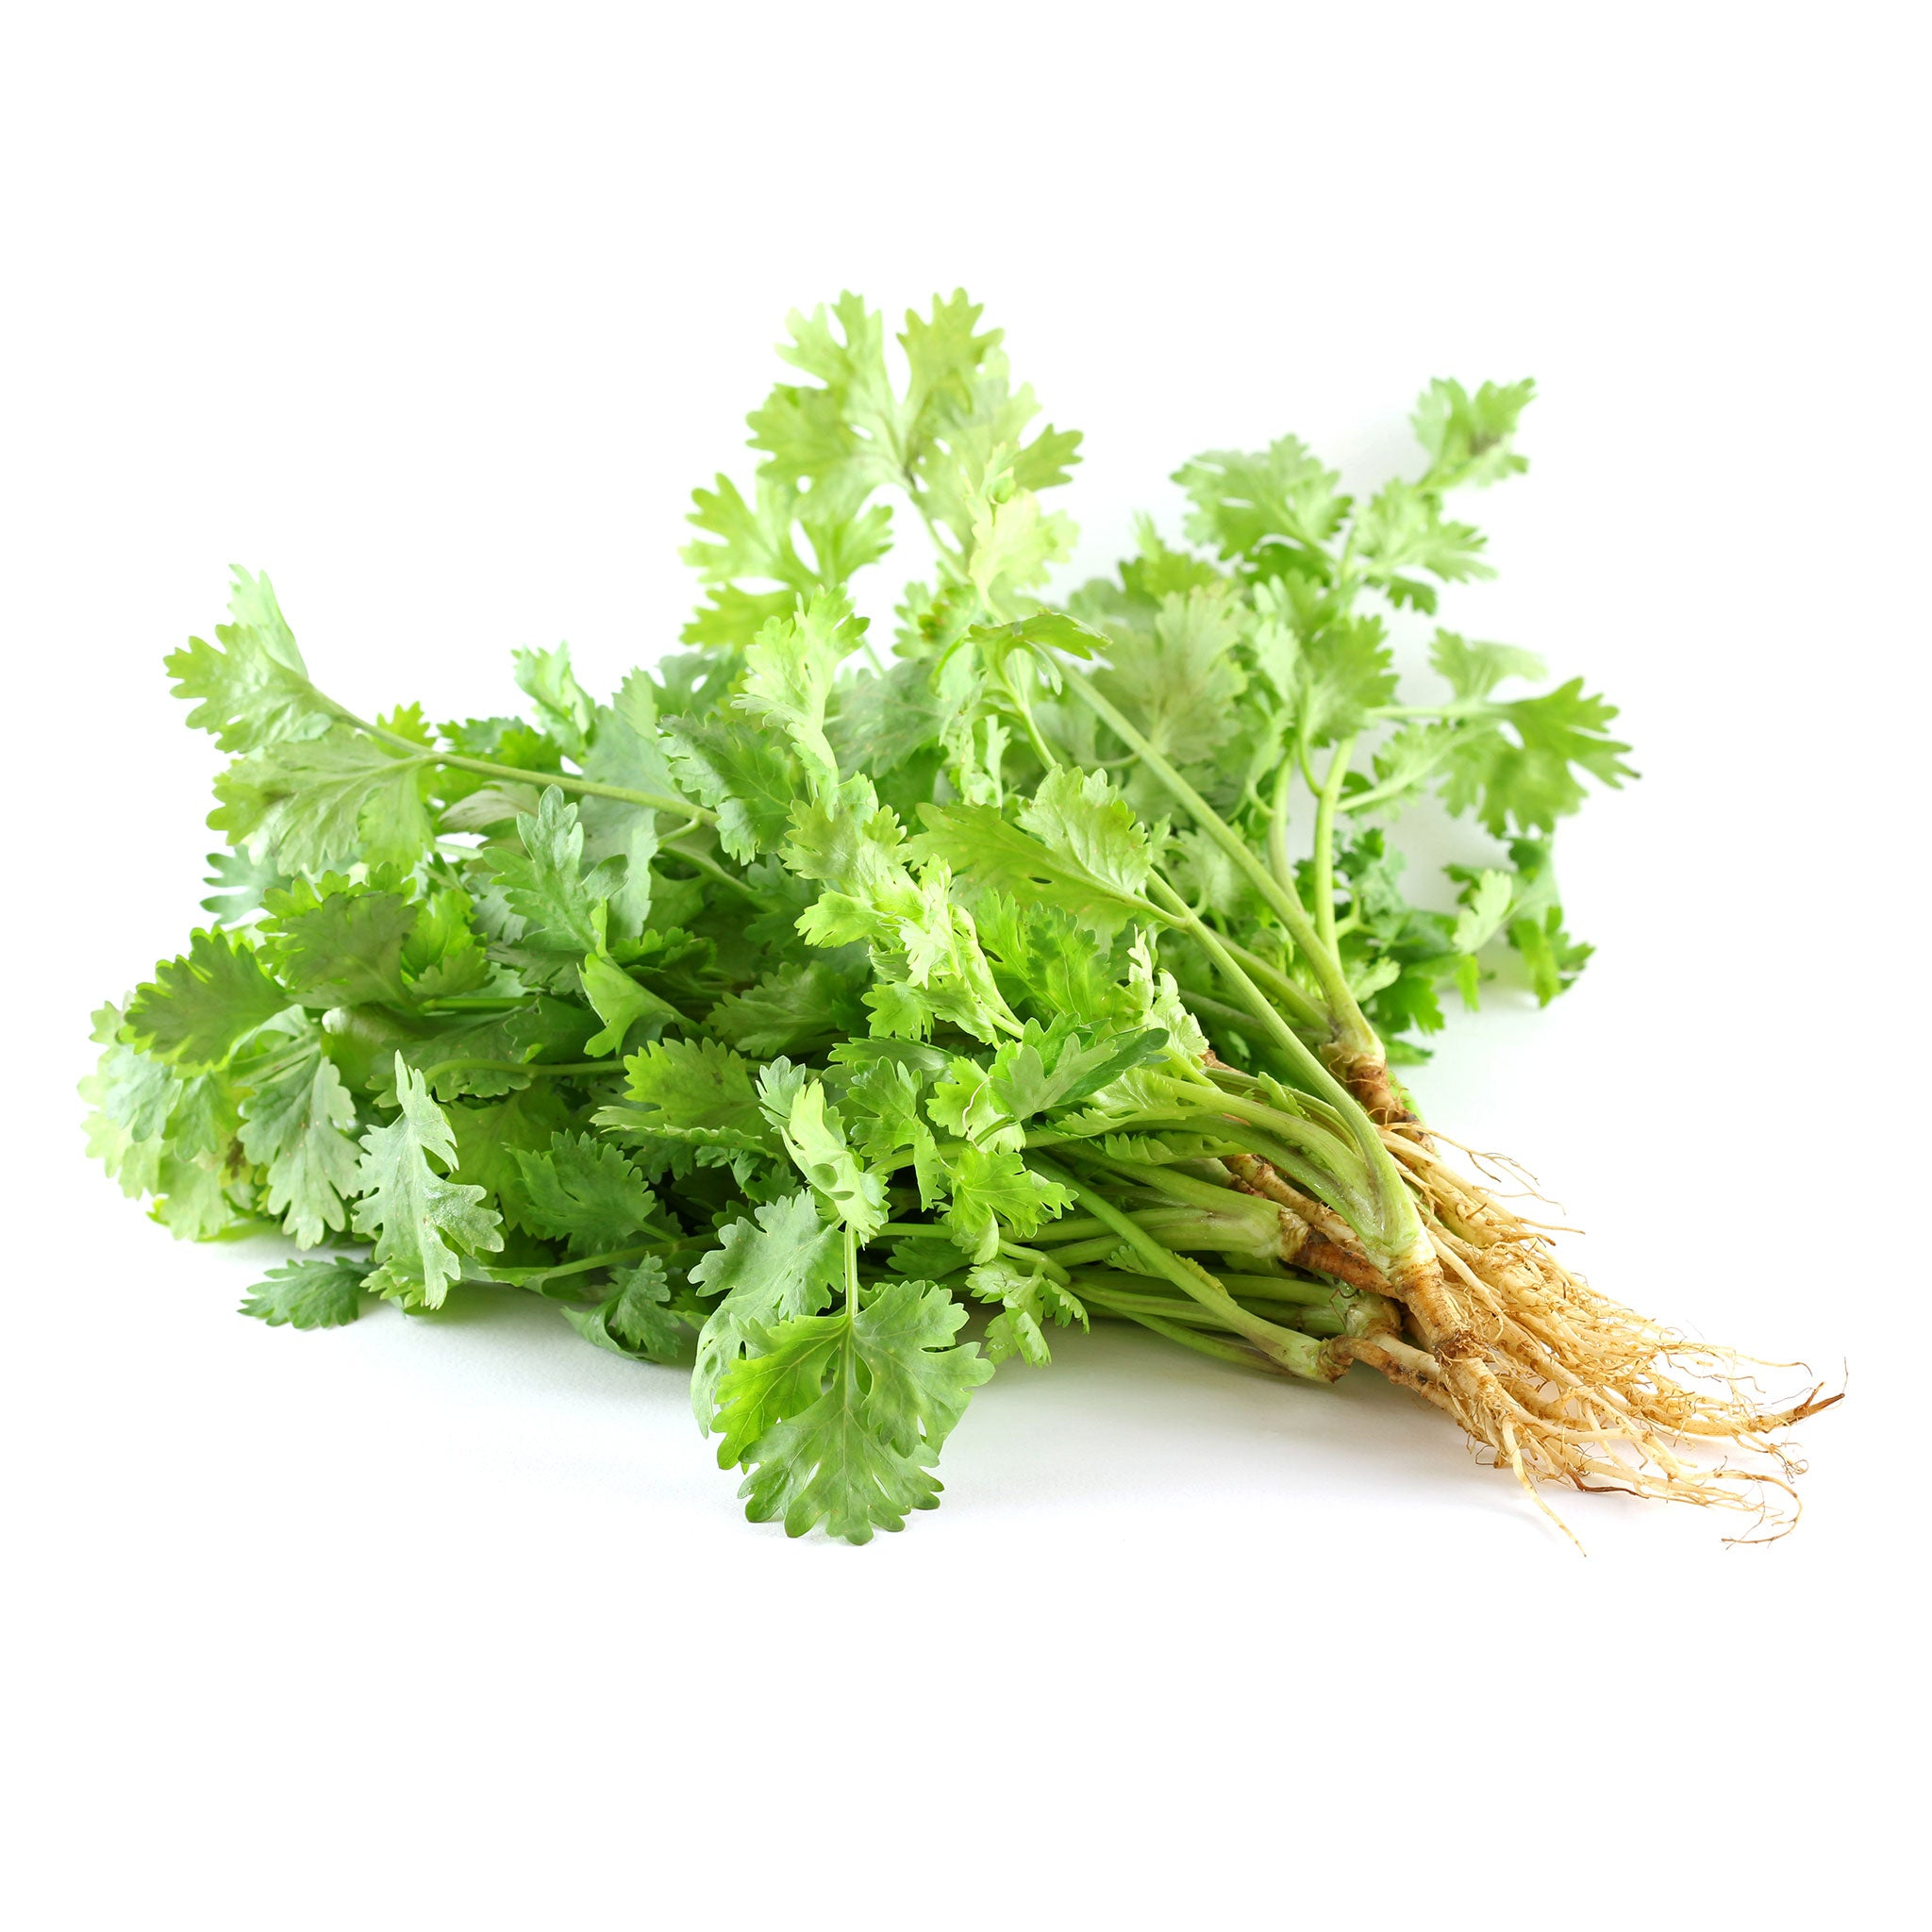 Fresh Thai coriander root (100g) - Imported weekly from Thailand